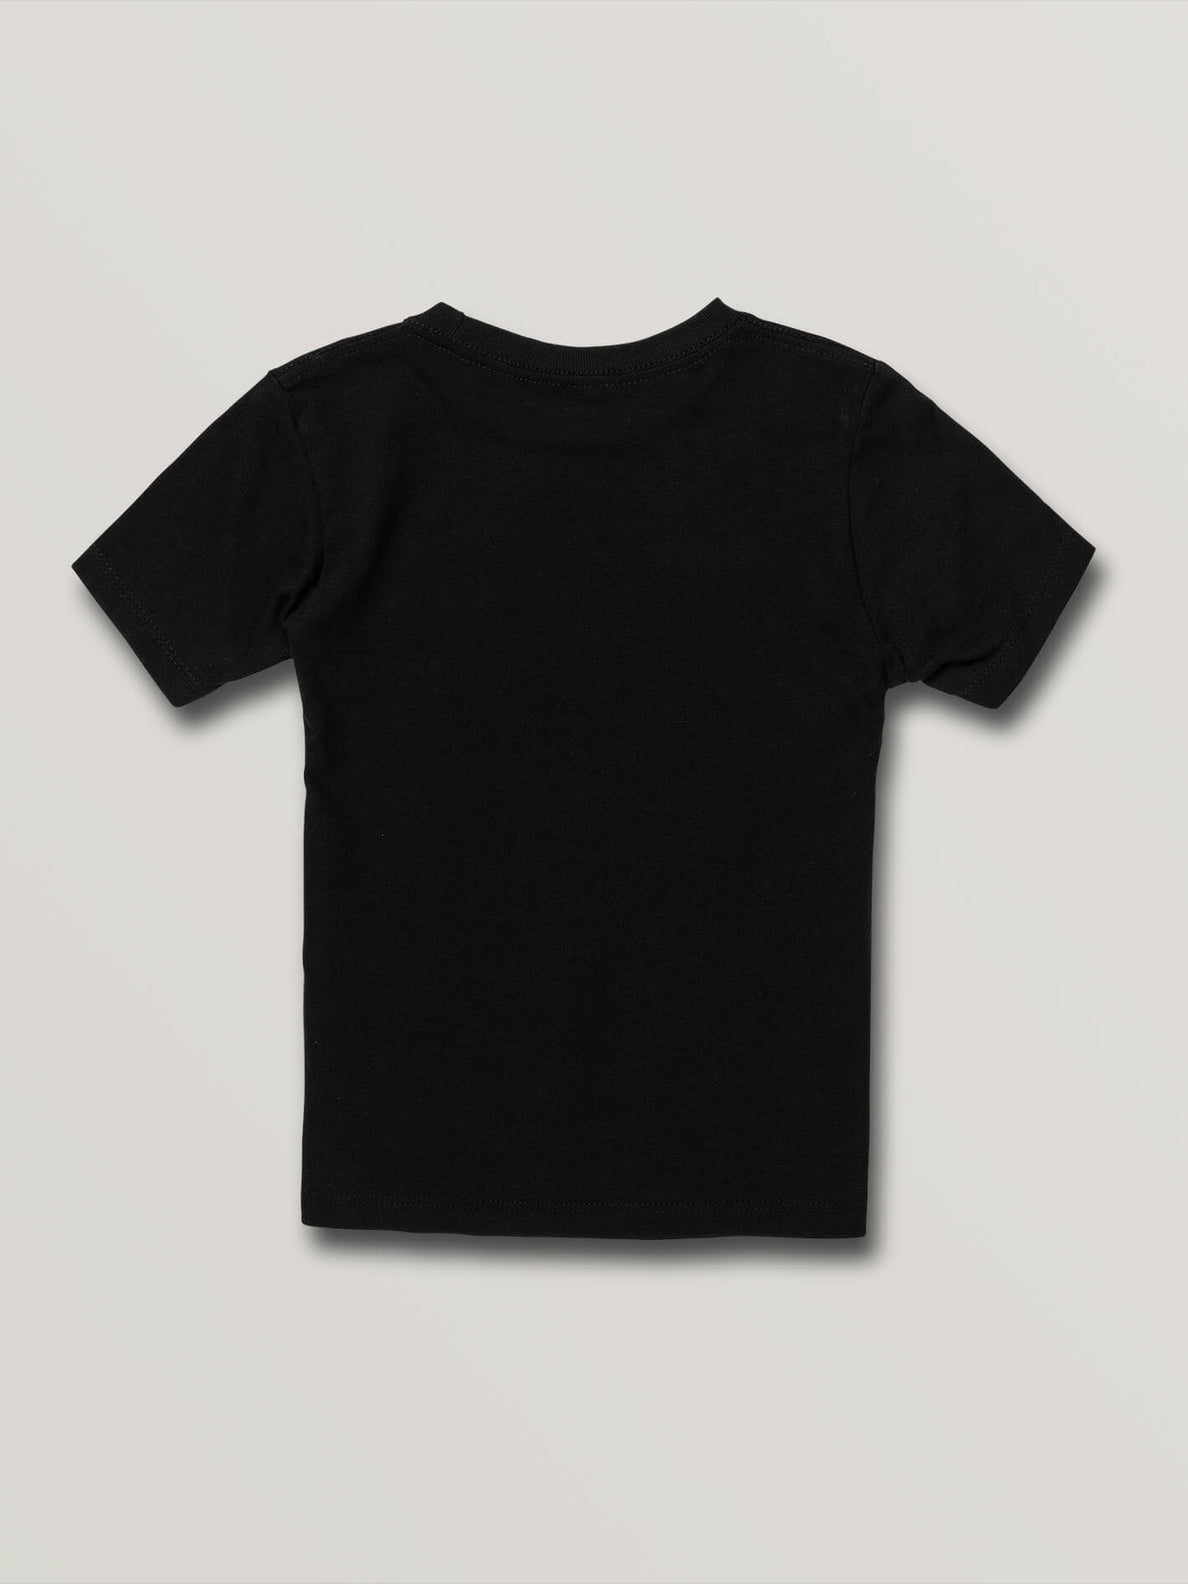 Little Boys Muchacho Short Sleeve Tee - Black